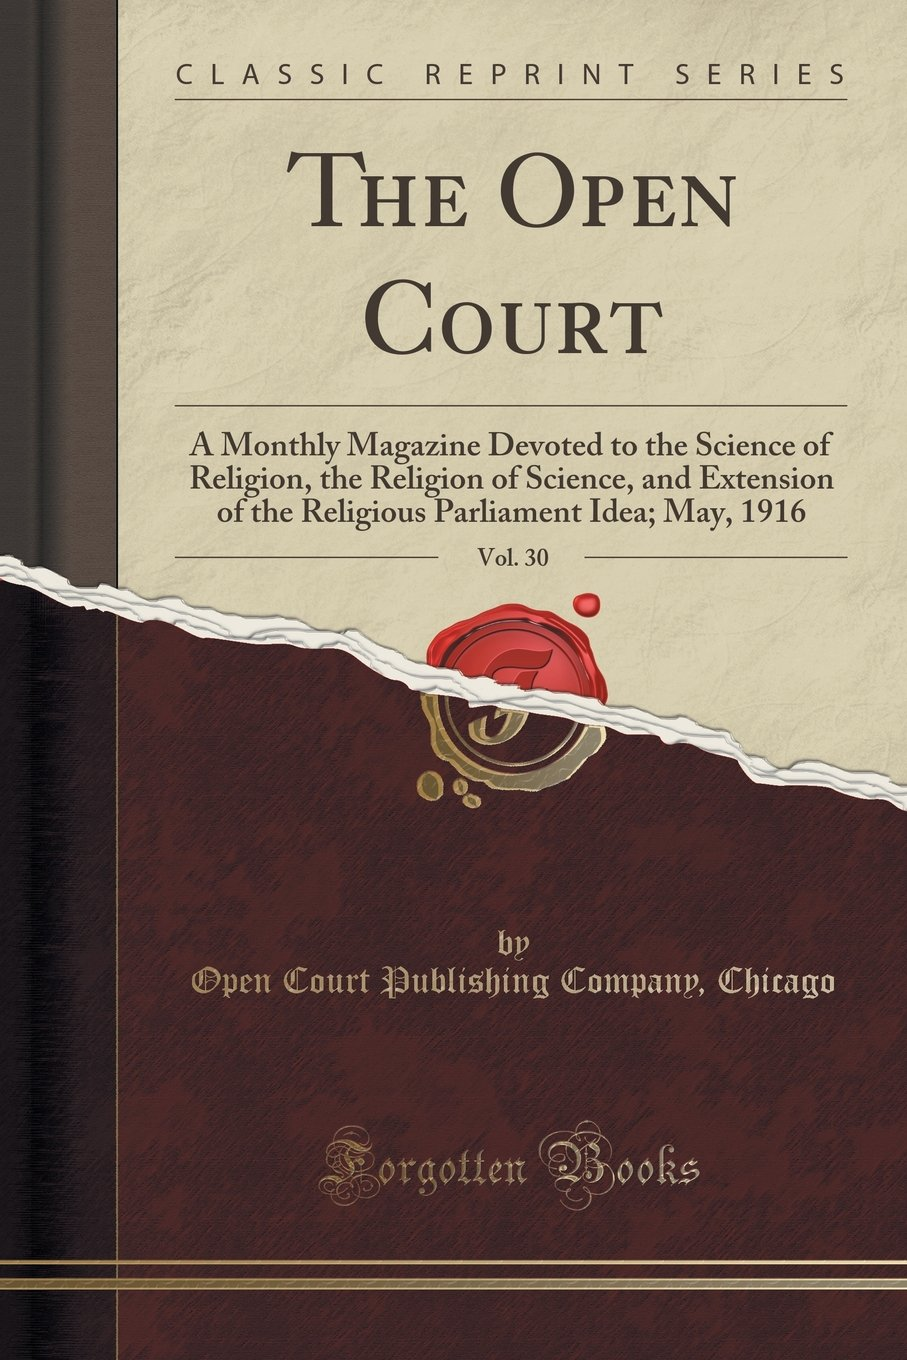 The Open Court, Vol. 30: A Monthly Magazine Devoted to the Science of Religion, the Religion of Science, and Extension of the Religious Parliament Idea; May, 1916 (Classic Reprint) pdf epub